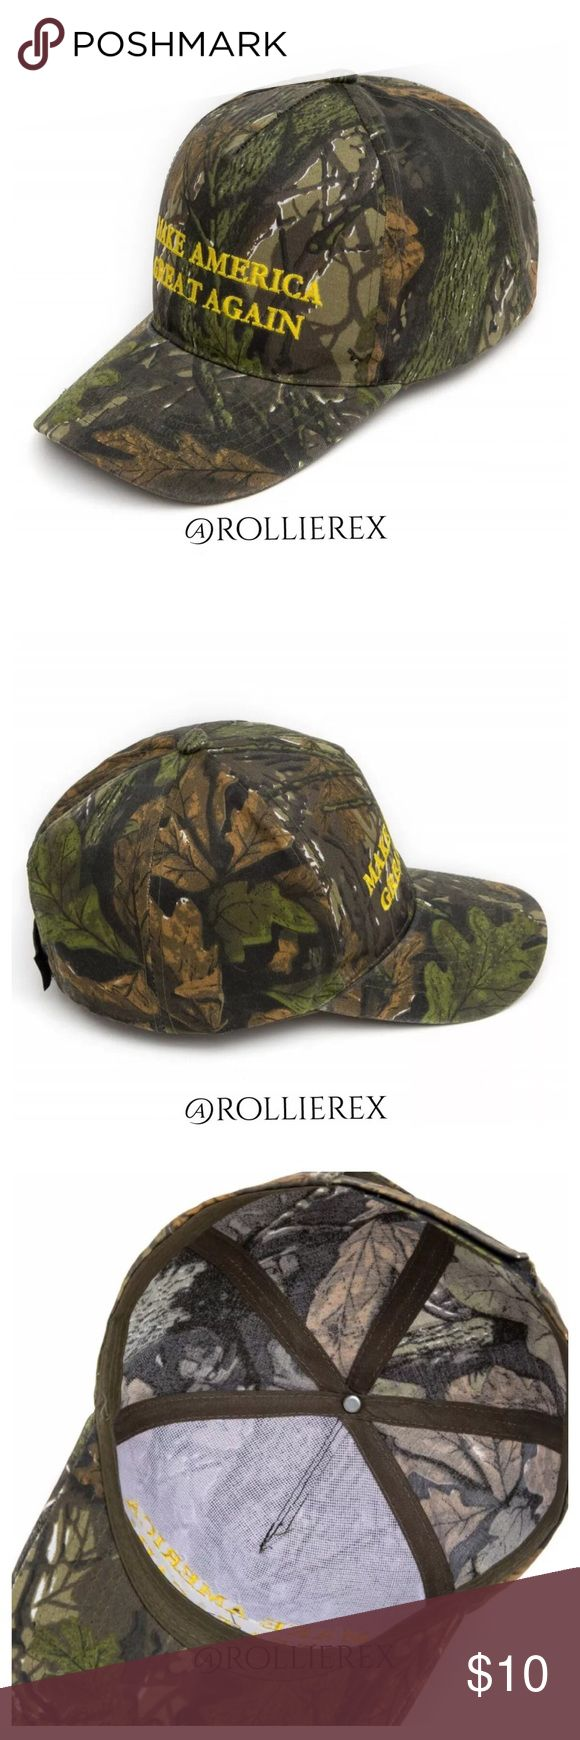 Trump Camo Hat Brand new without tags. Material is cotton. This is NOT a political forum! I'm selling this hat, not an argument! Accessories Hats